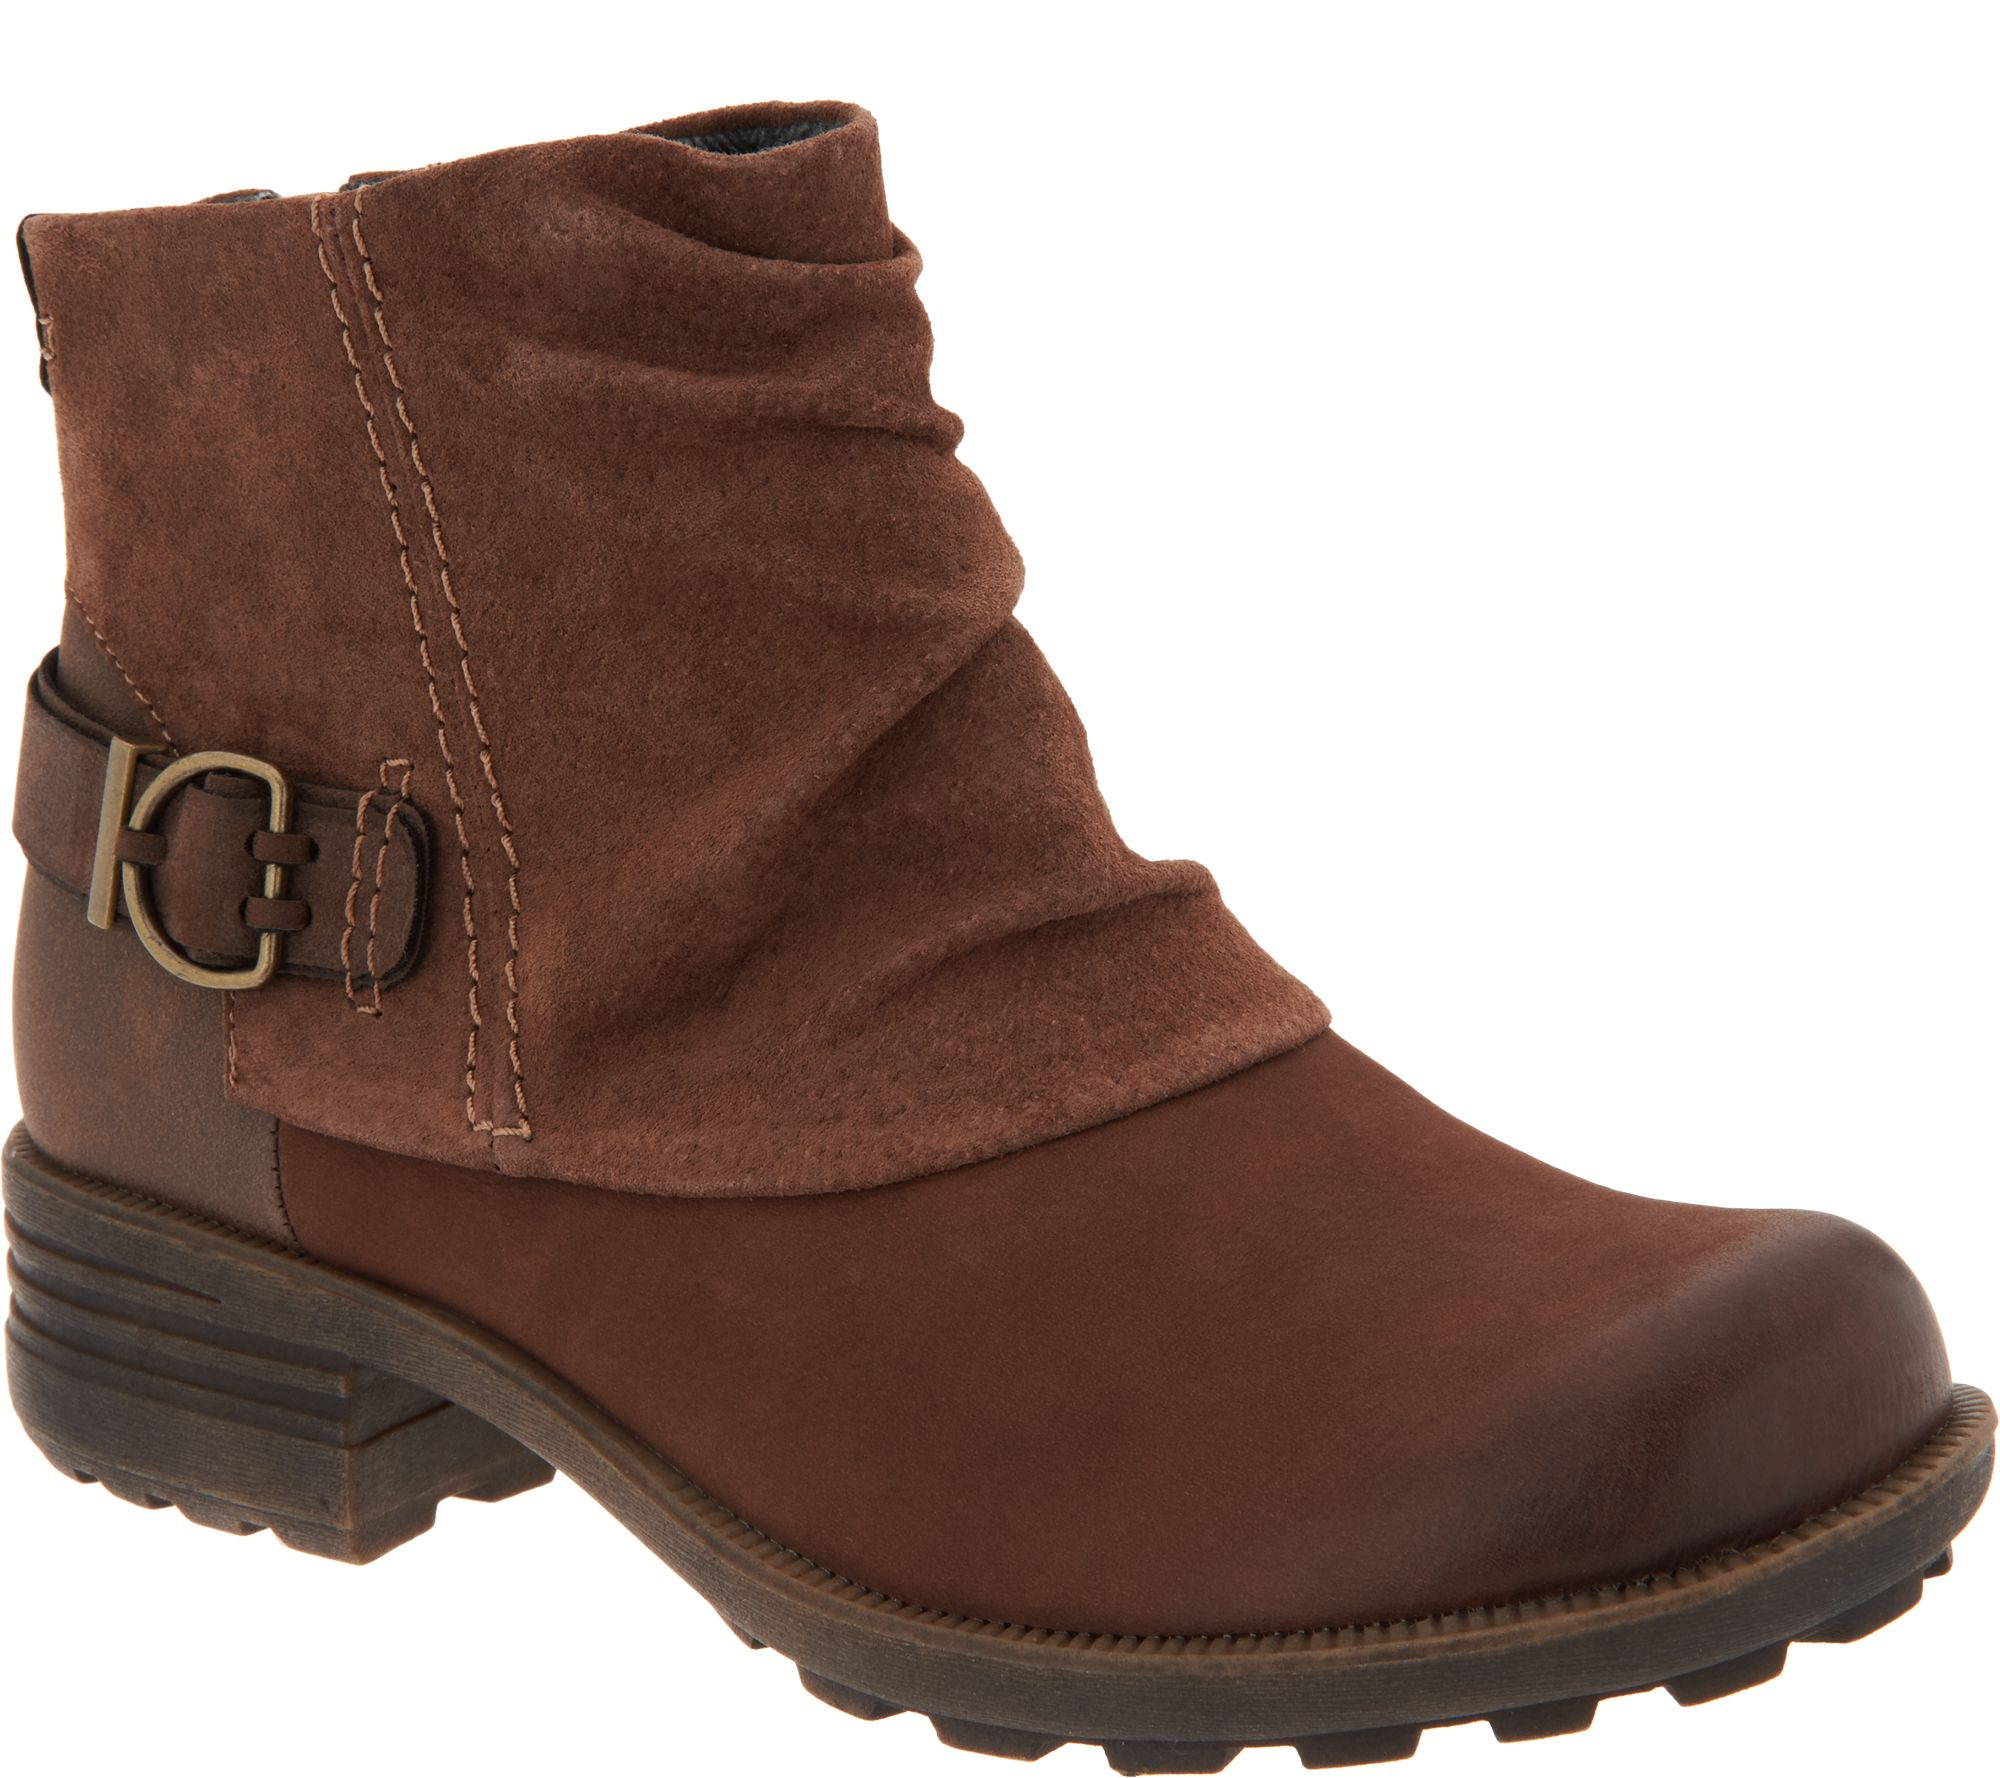 cf1023ff4 Earth Origins Leather and Suede Ankle Boots - Paige - Page 1 — QVC.com